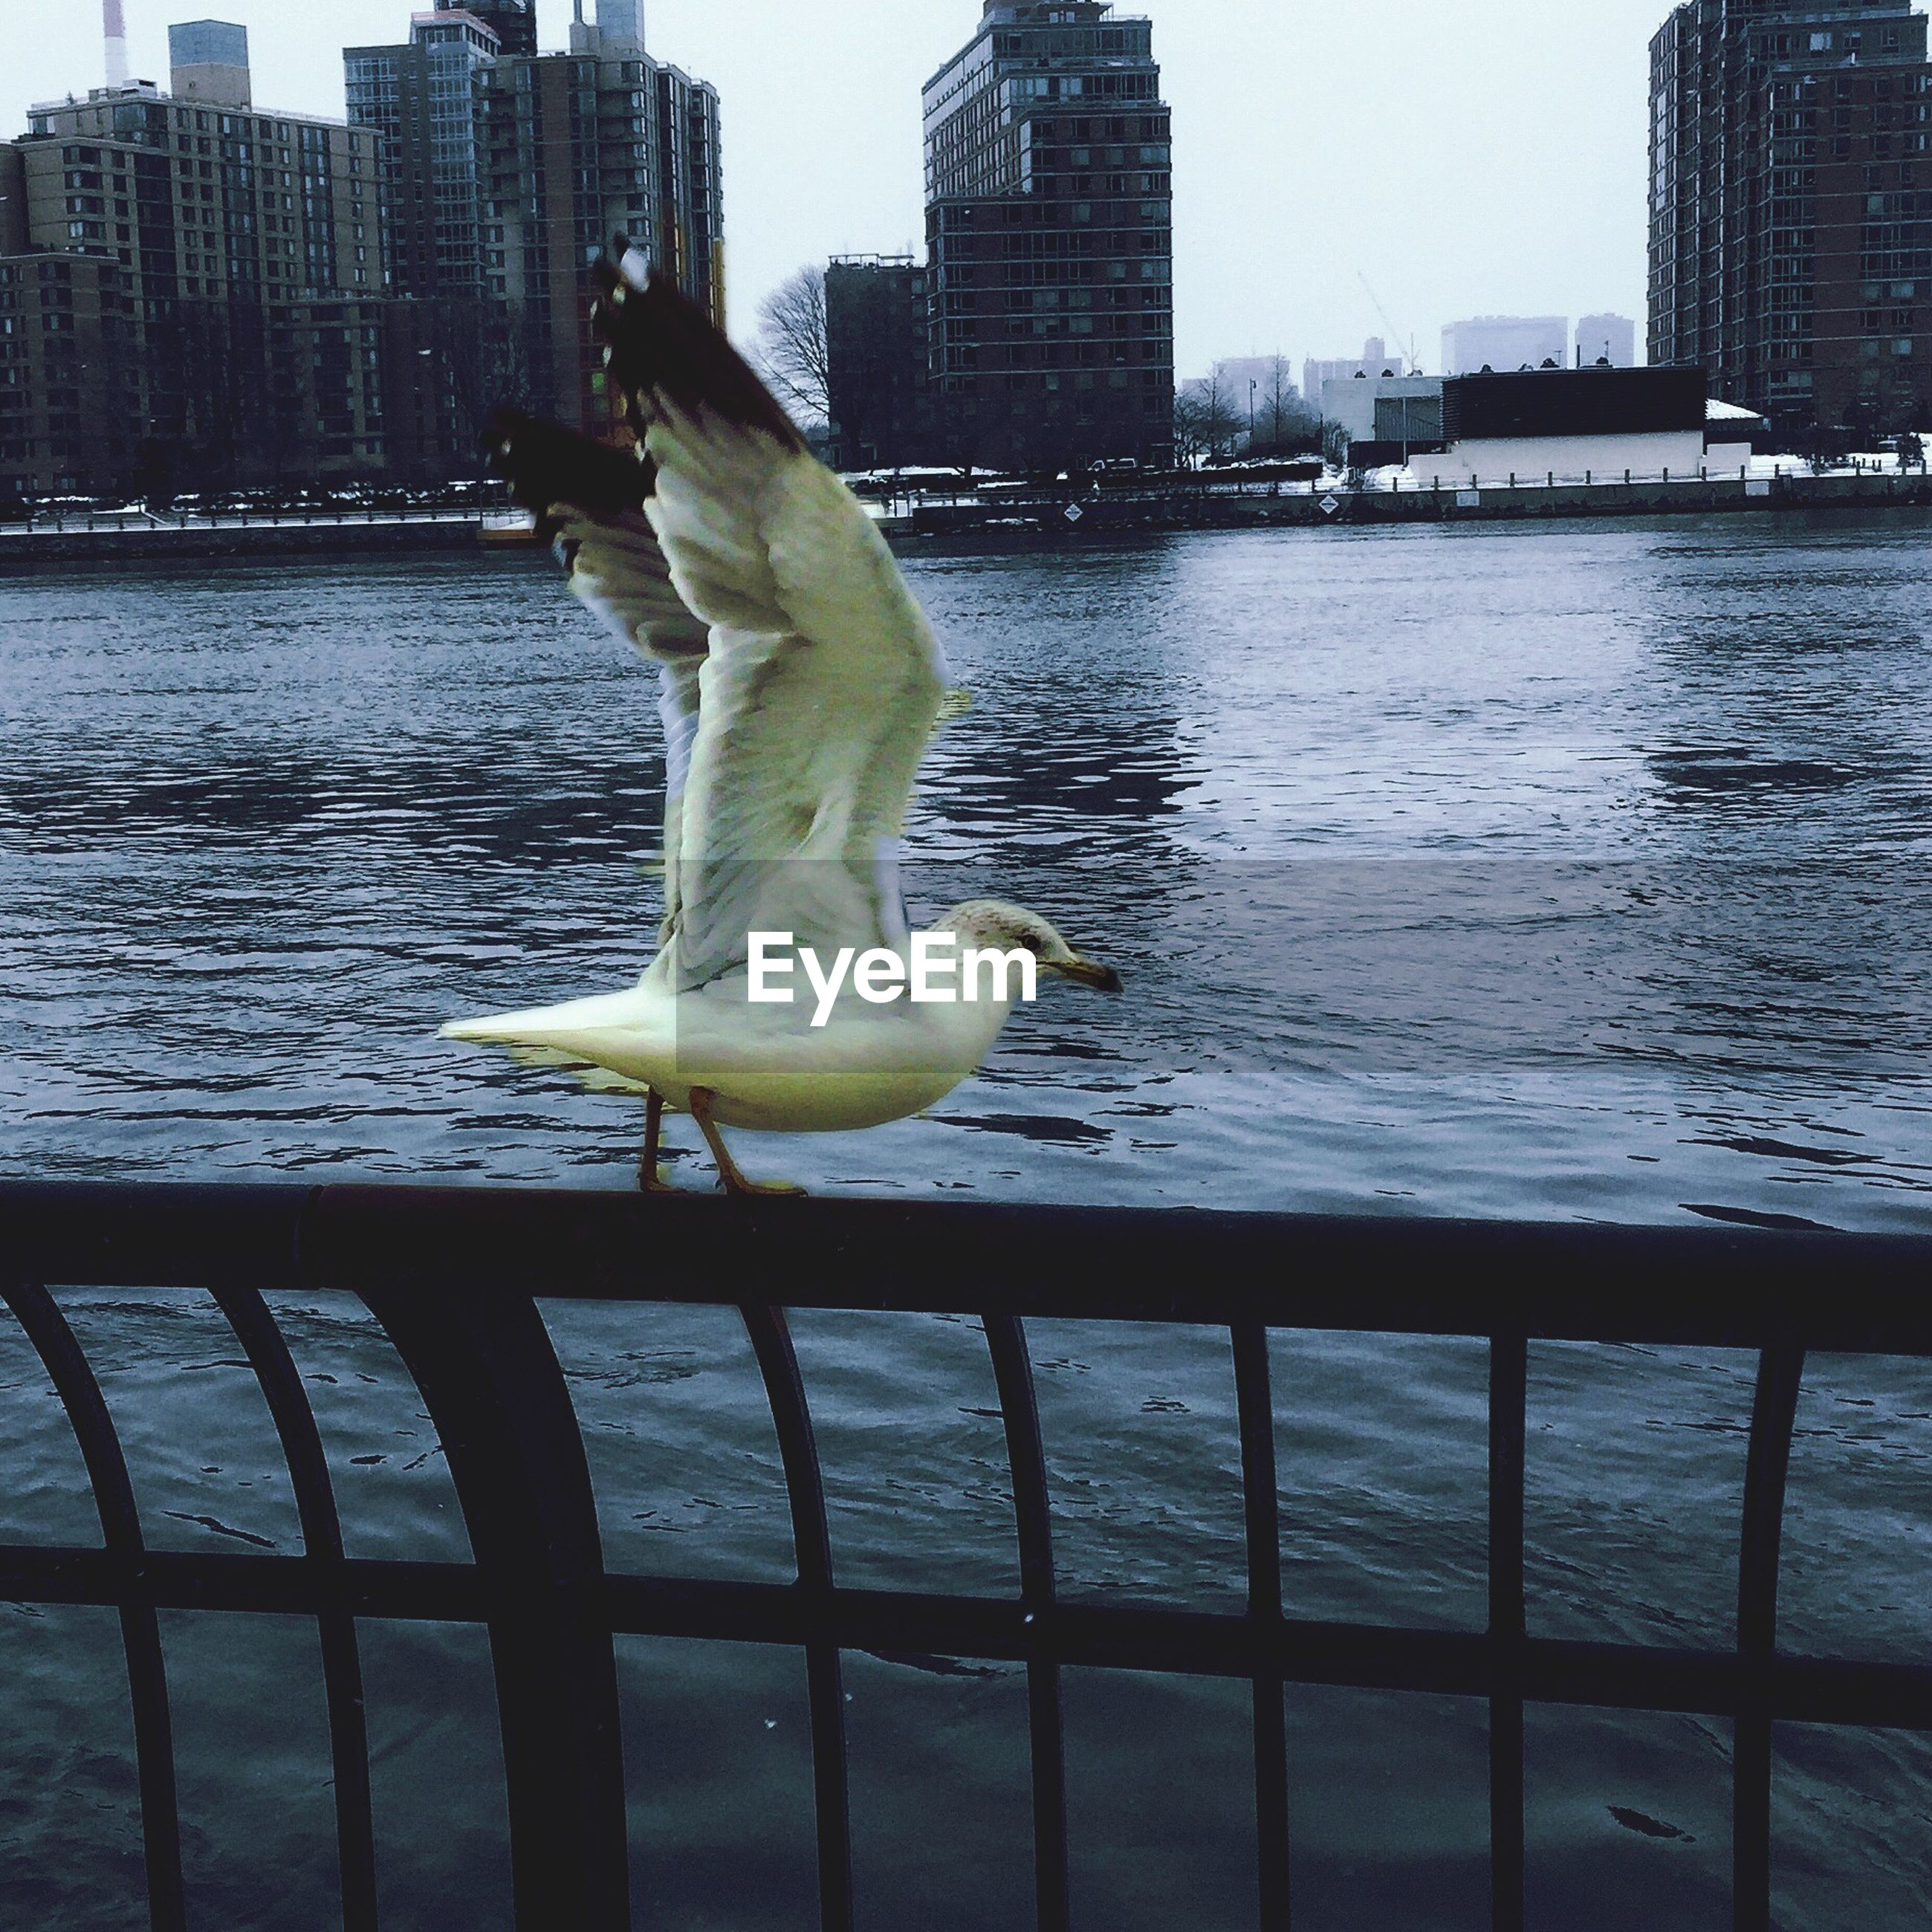 Seagull taking off on railing by river against cityscape